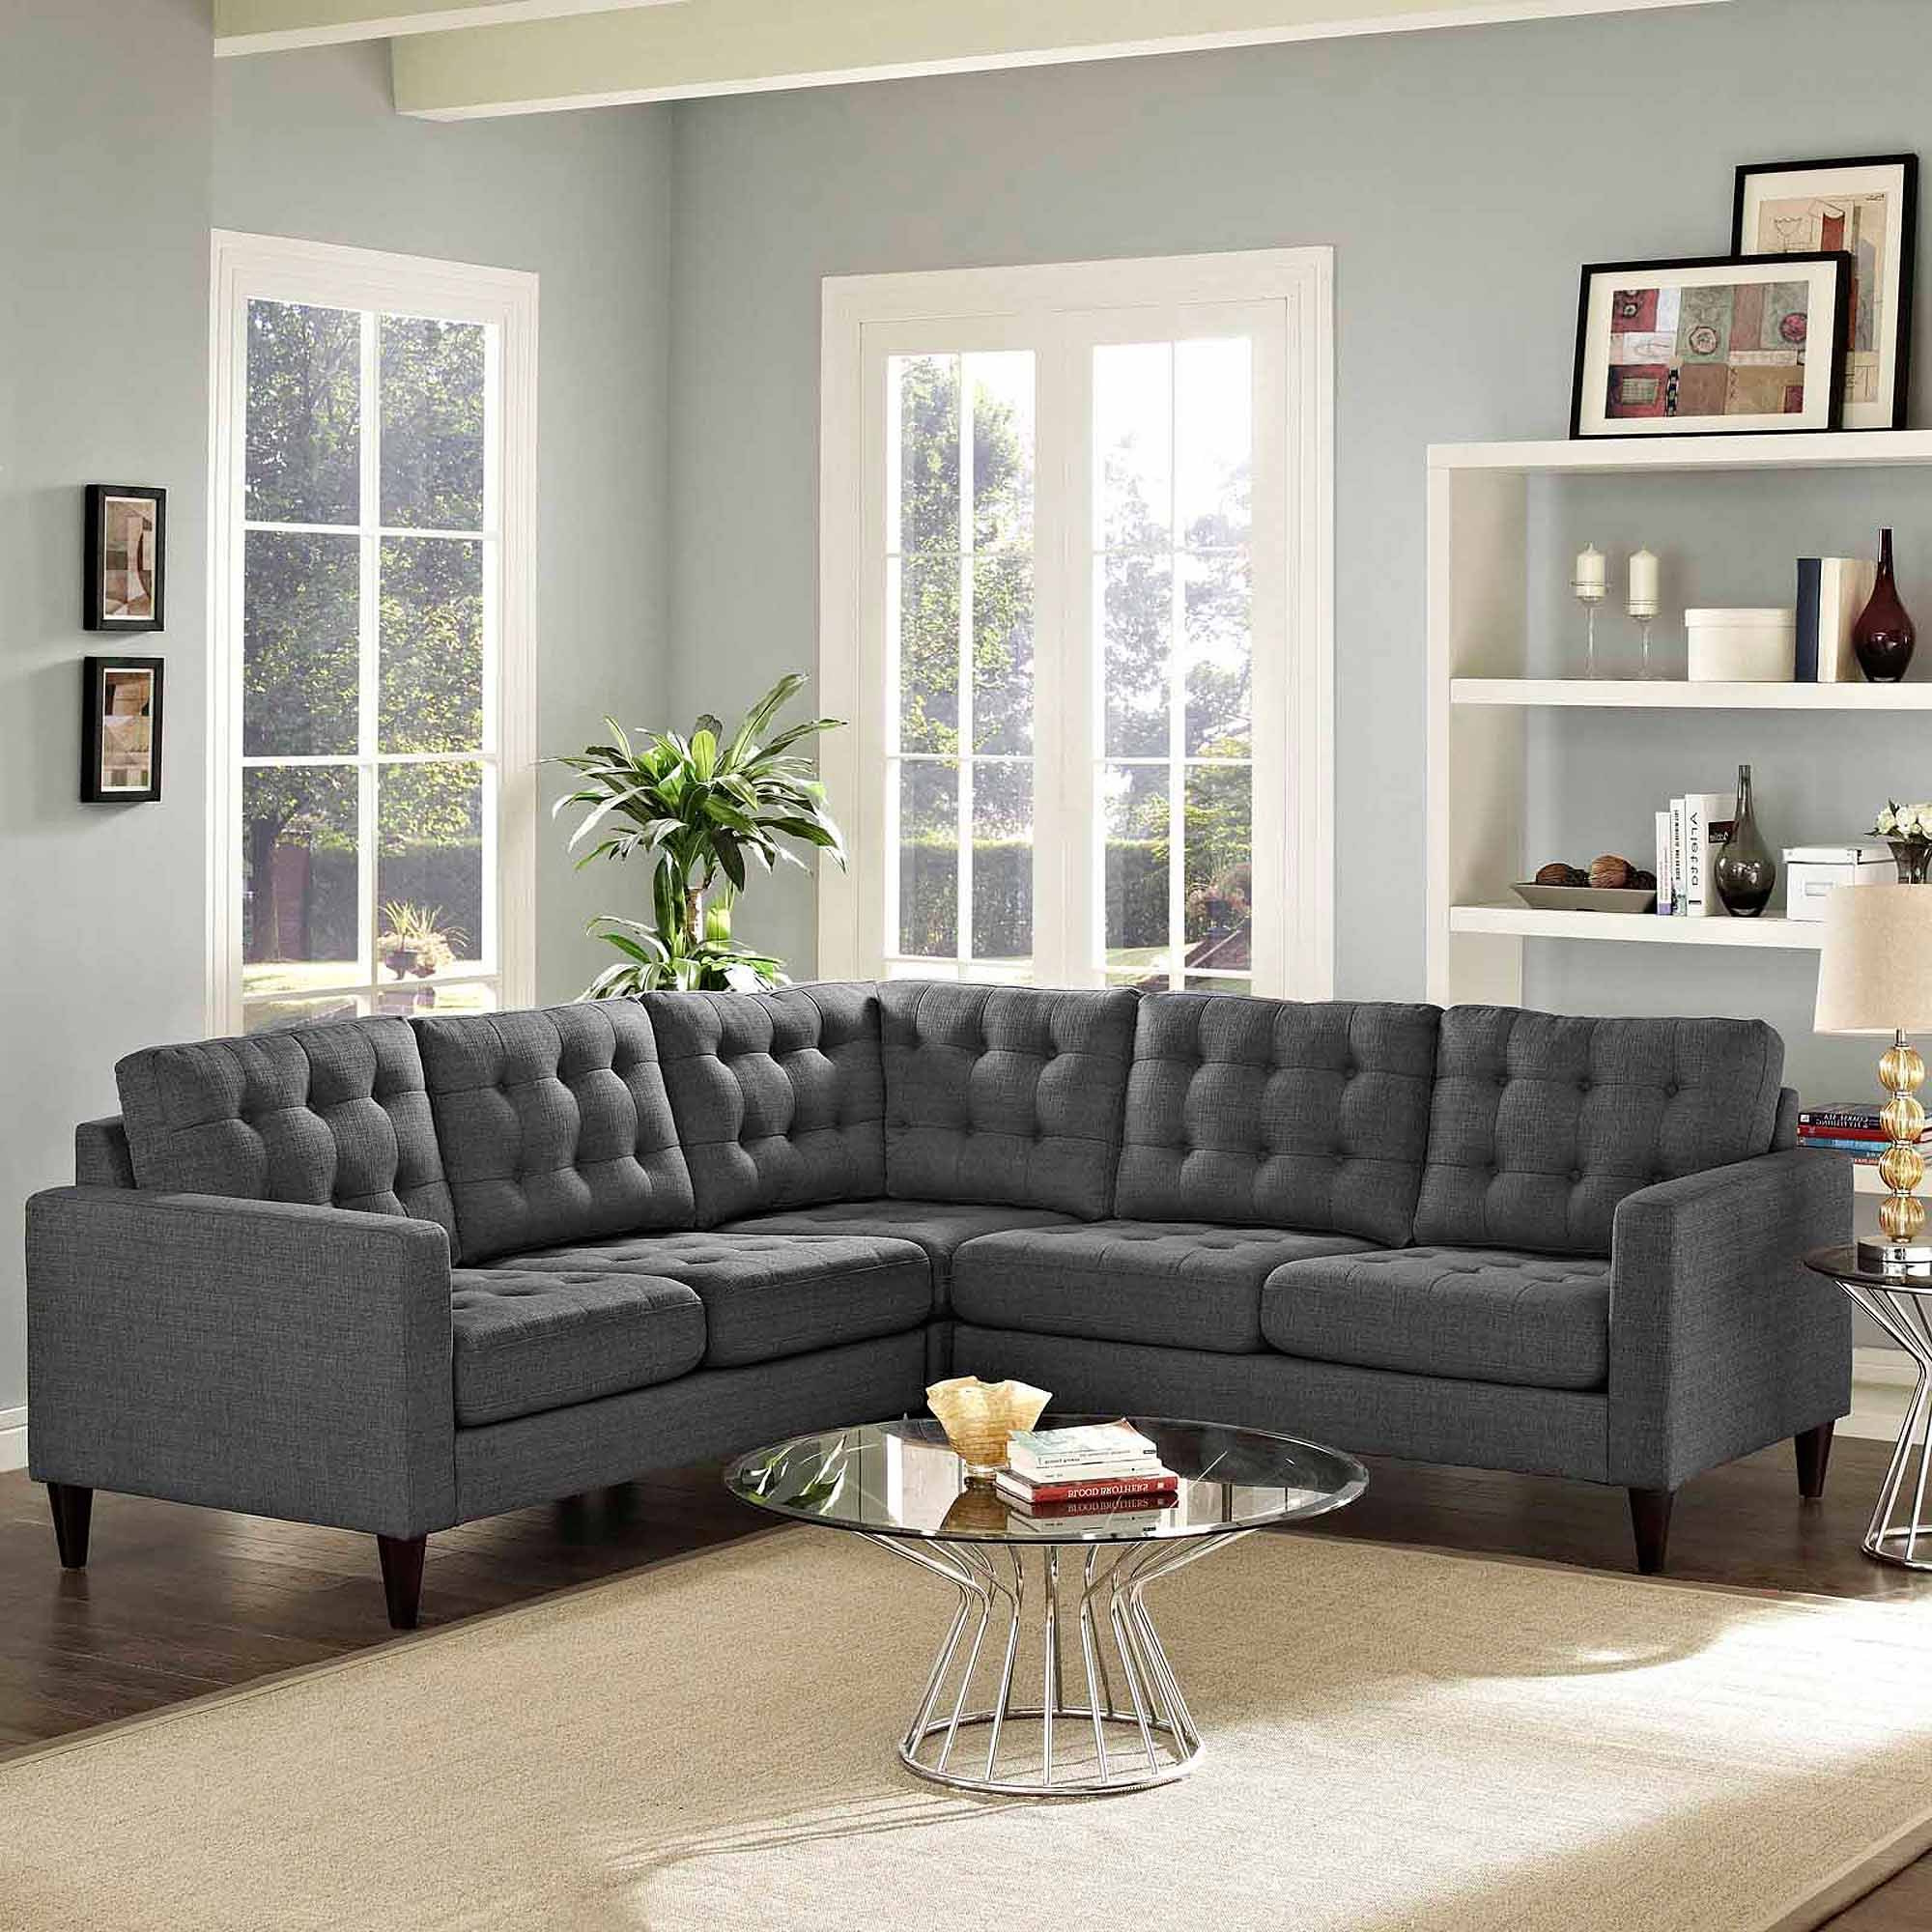 Moda 3 Piece Sectional With Chaise In Whitley 3 Piece Sectionals By Nate Berkus And Jeremiah Brent (View 18 of 20)